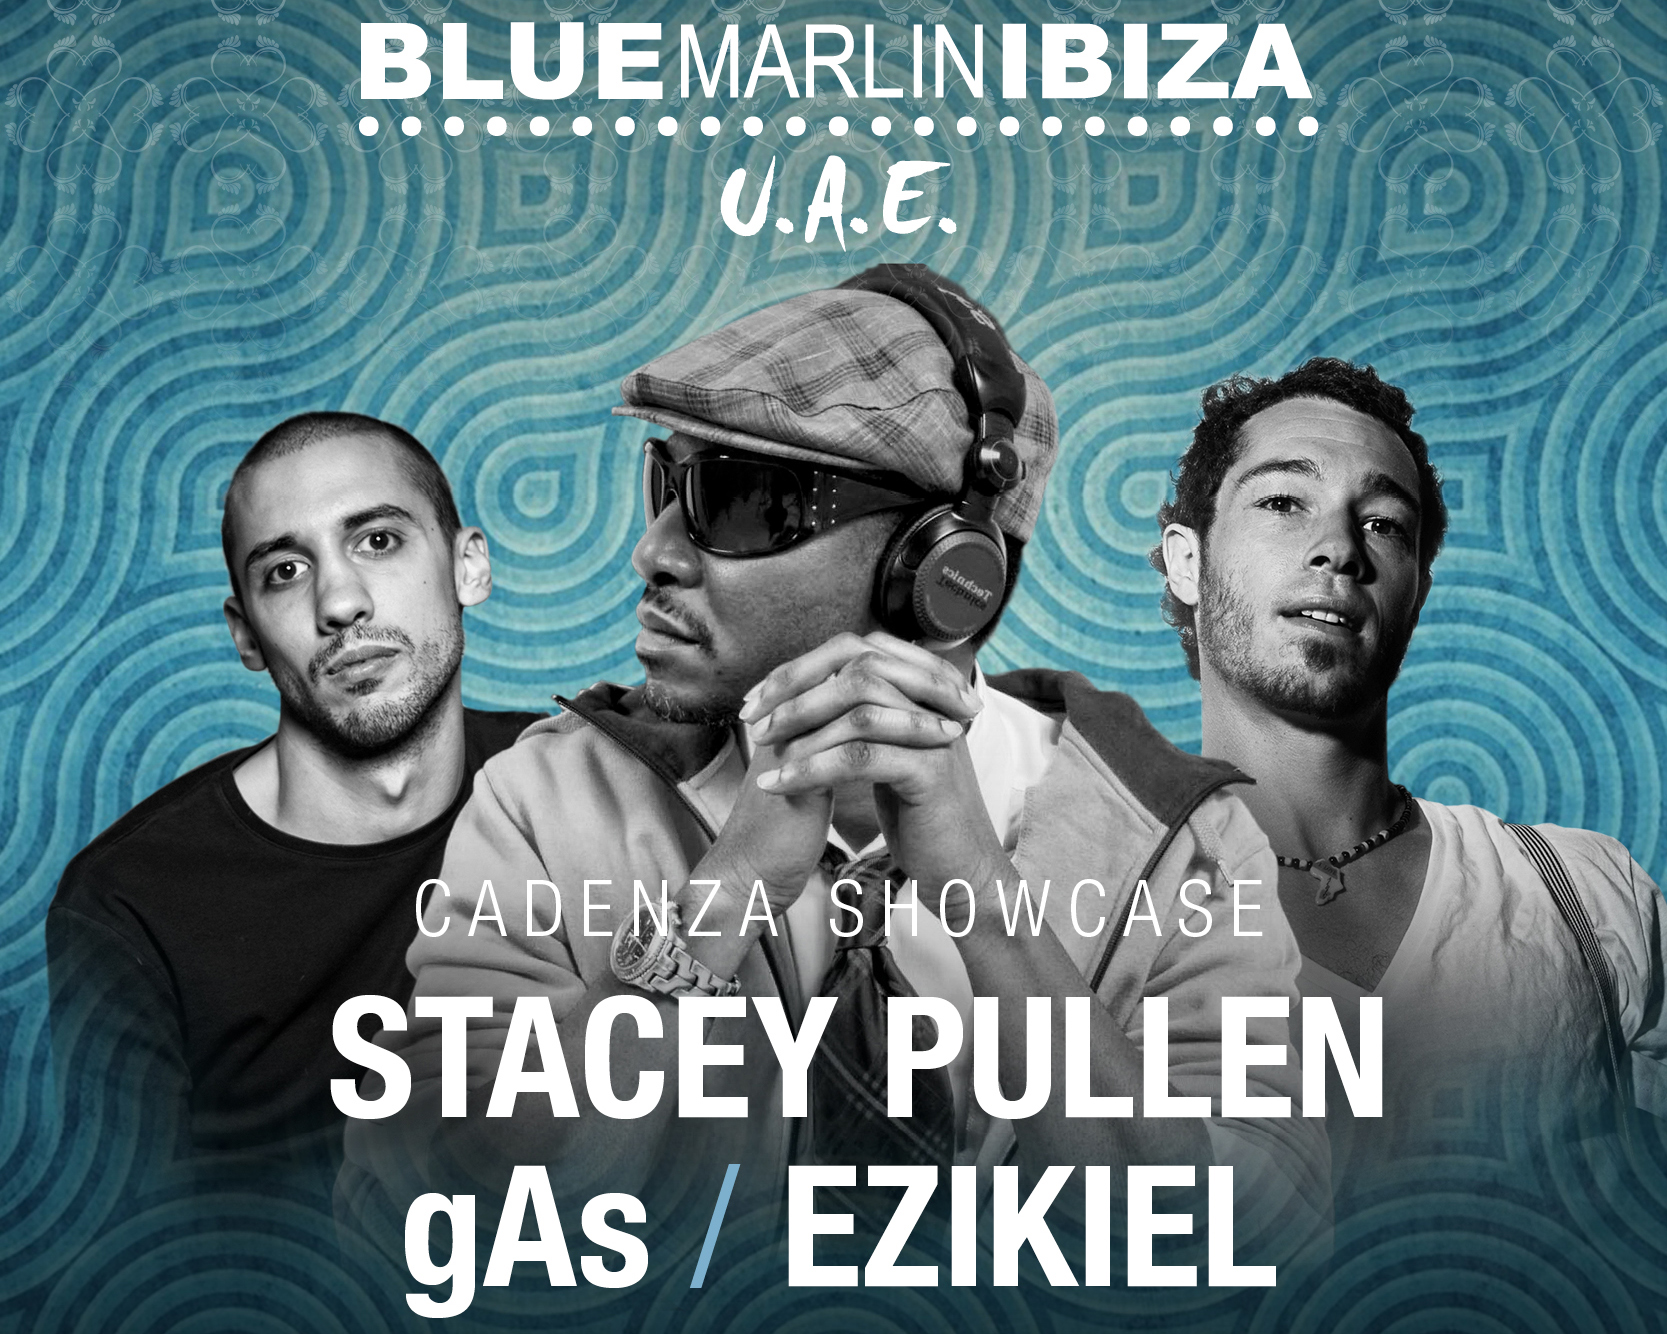 GAS, STACEY PULLEN & EZIKIEL AT BLUE MARLIN IBIZA UAE